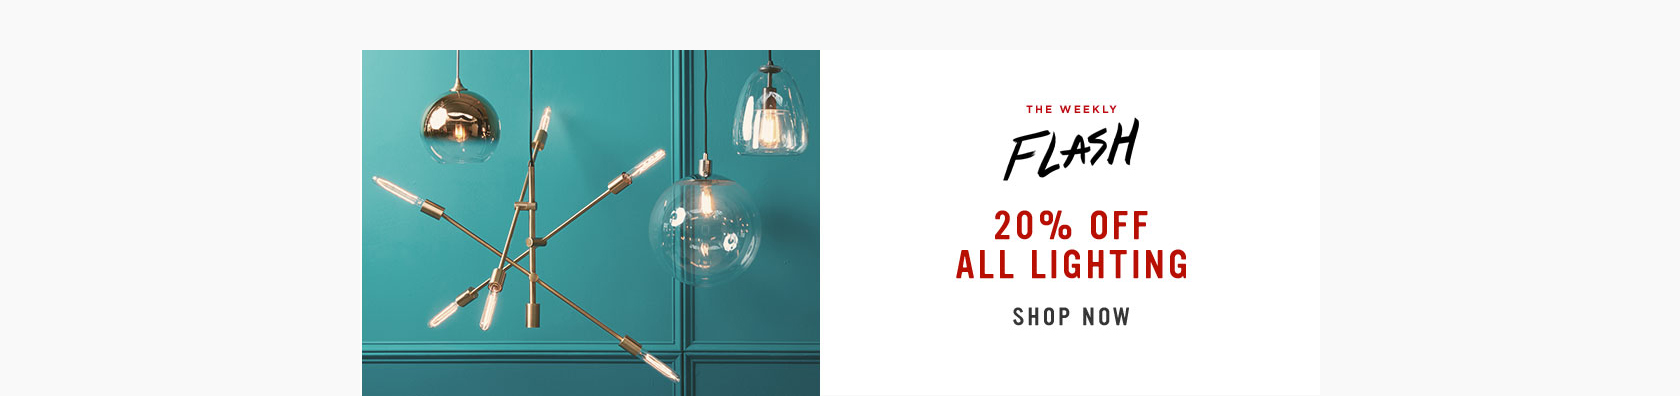 The Weekly Flash! 20% Off All Lighting.